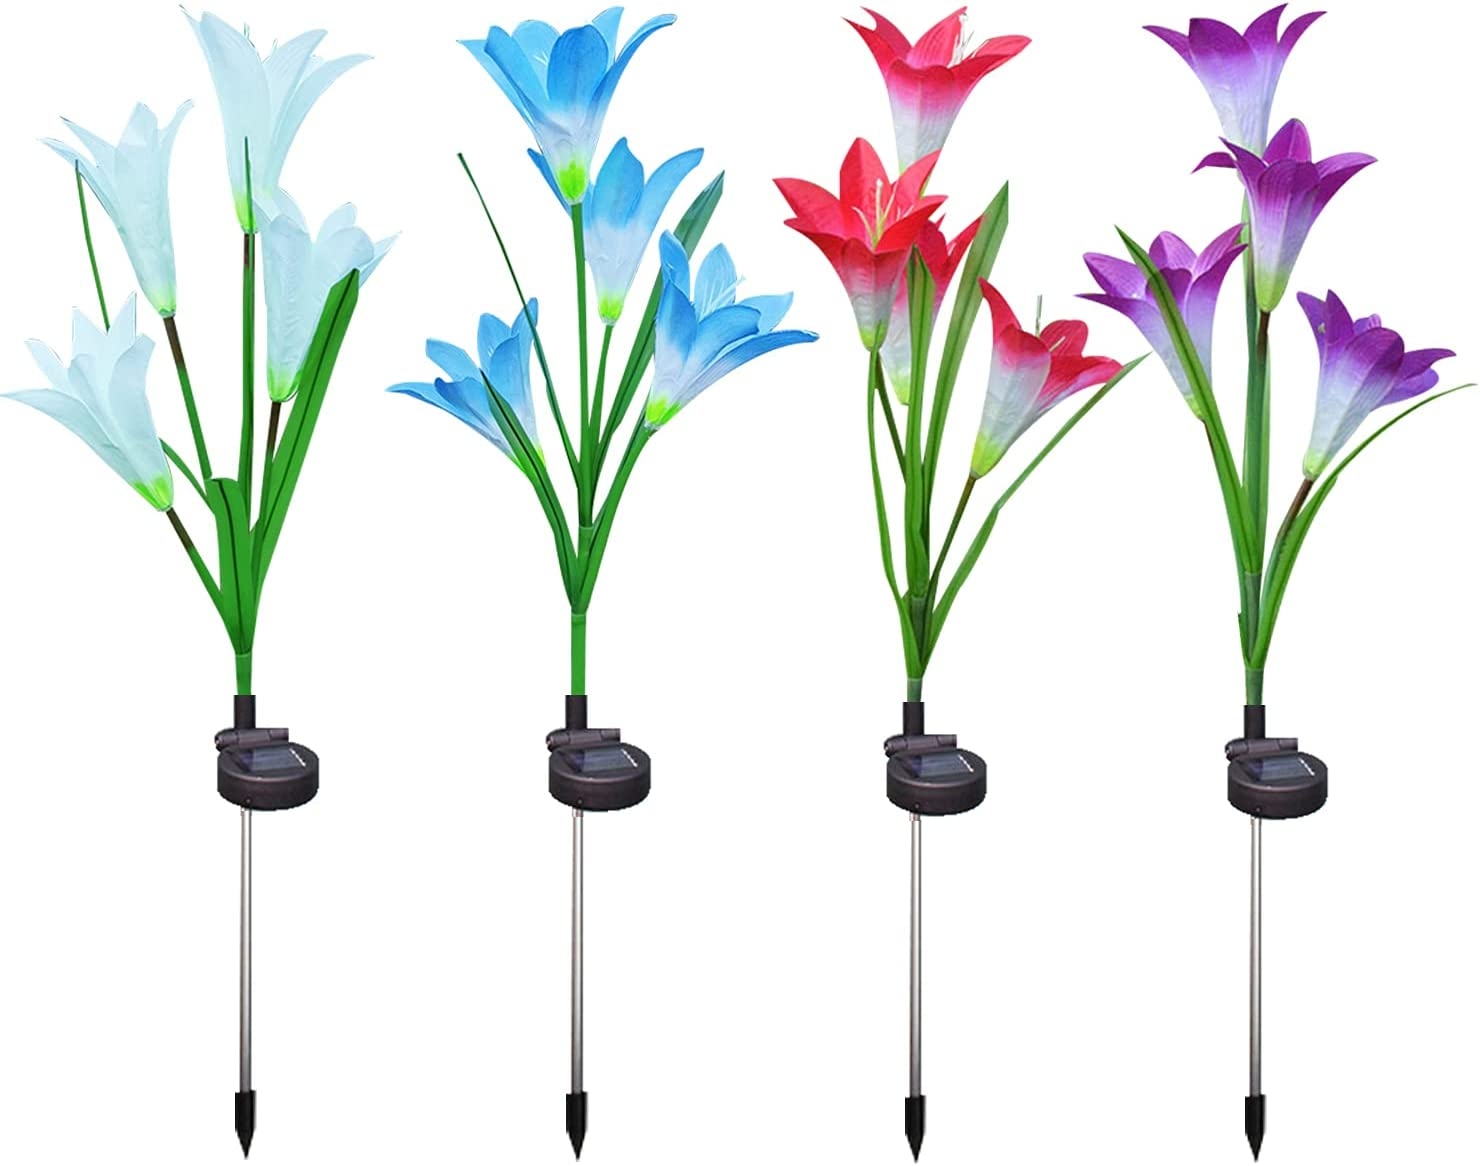 Outdoor Solar Garden Stake Lights, Solar Flower Lights with 16 Lily Flowers, New Upgraded Solar Garden Lights,Waterproof, Multi-ColorChanging LED Solar Landscape Lighting for Patio ,Yard Decoration